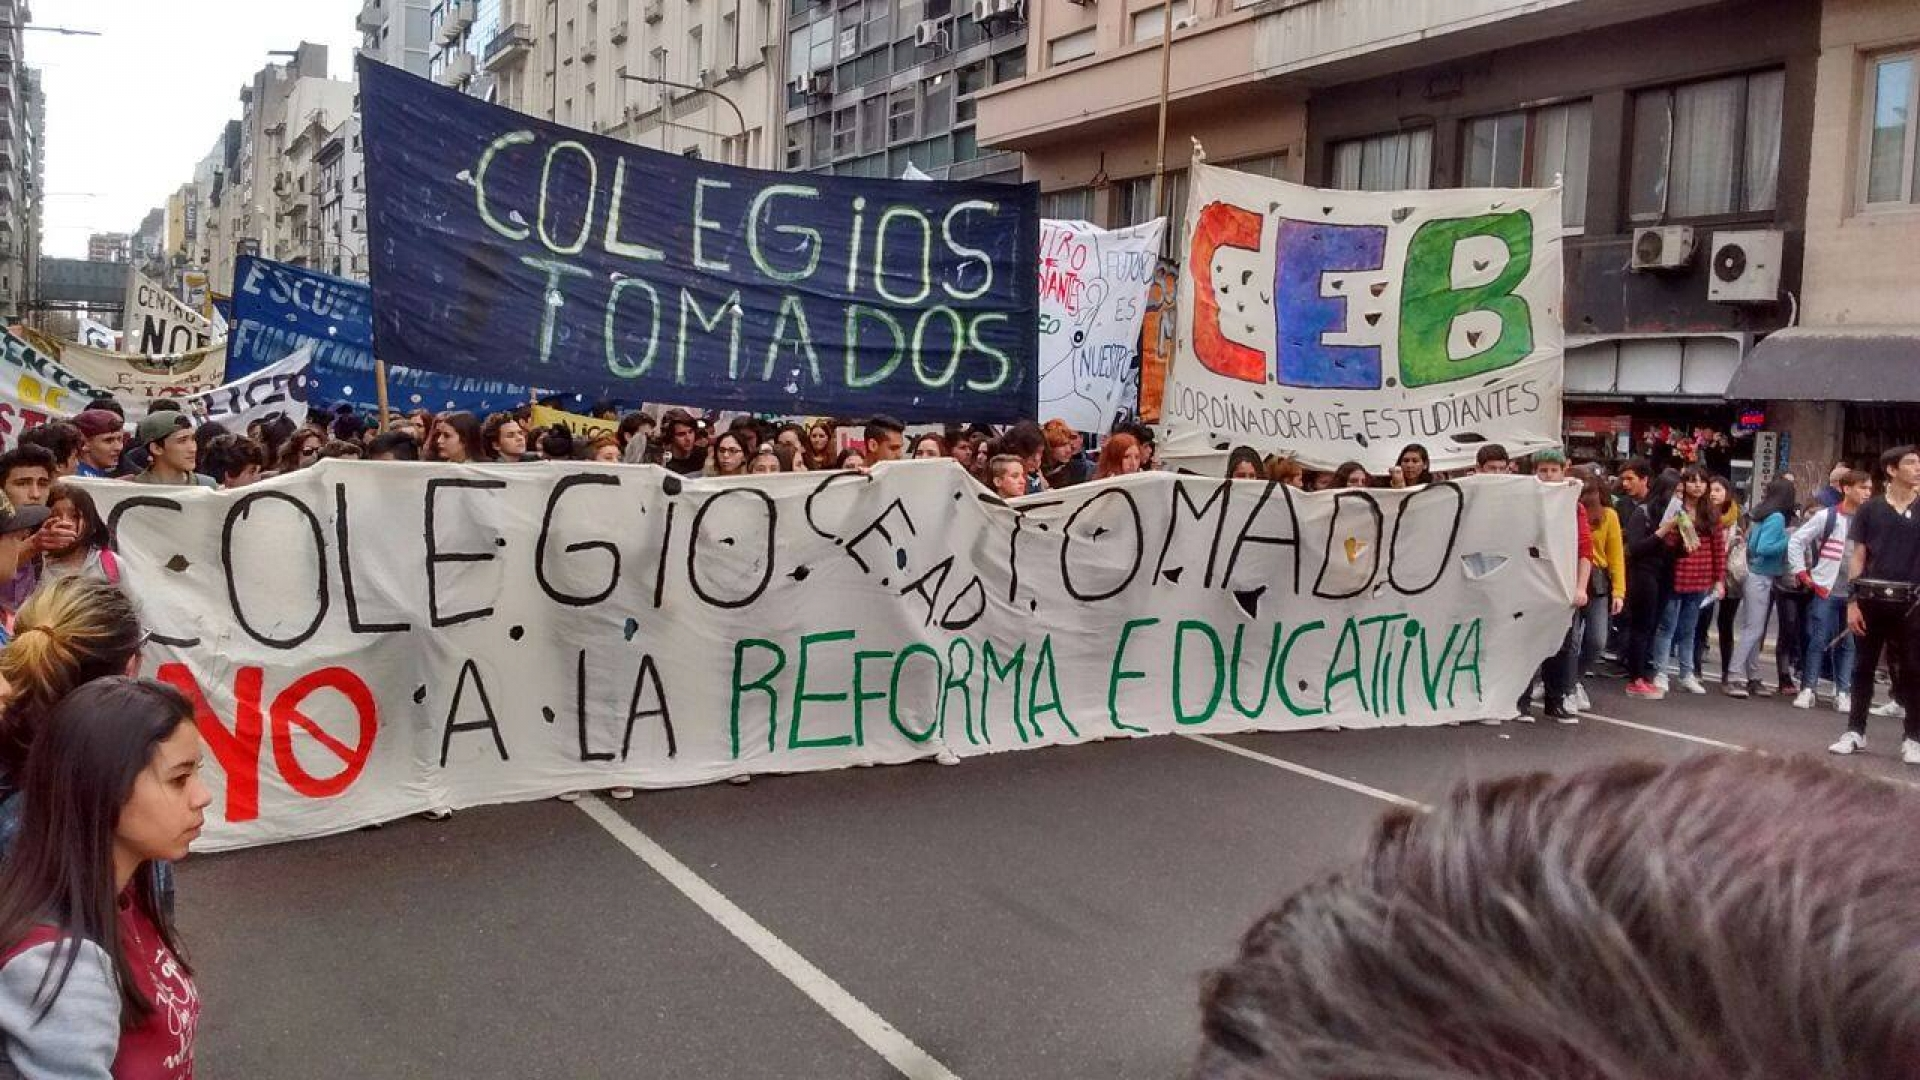 No a la Reforma Educativa